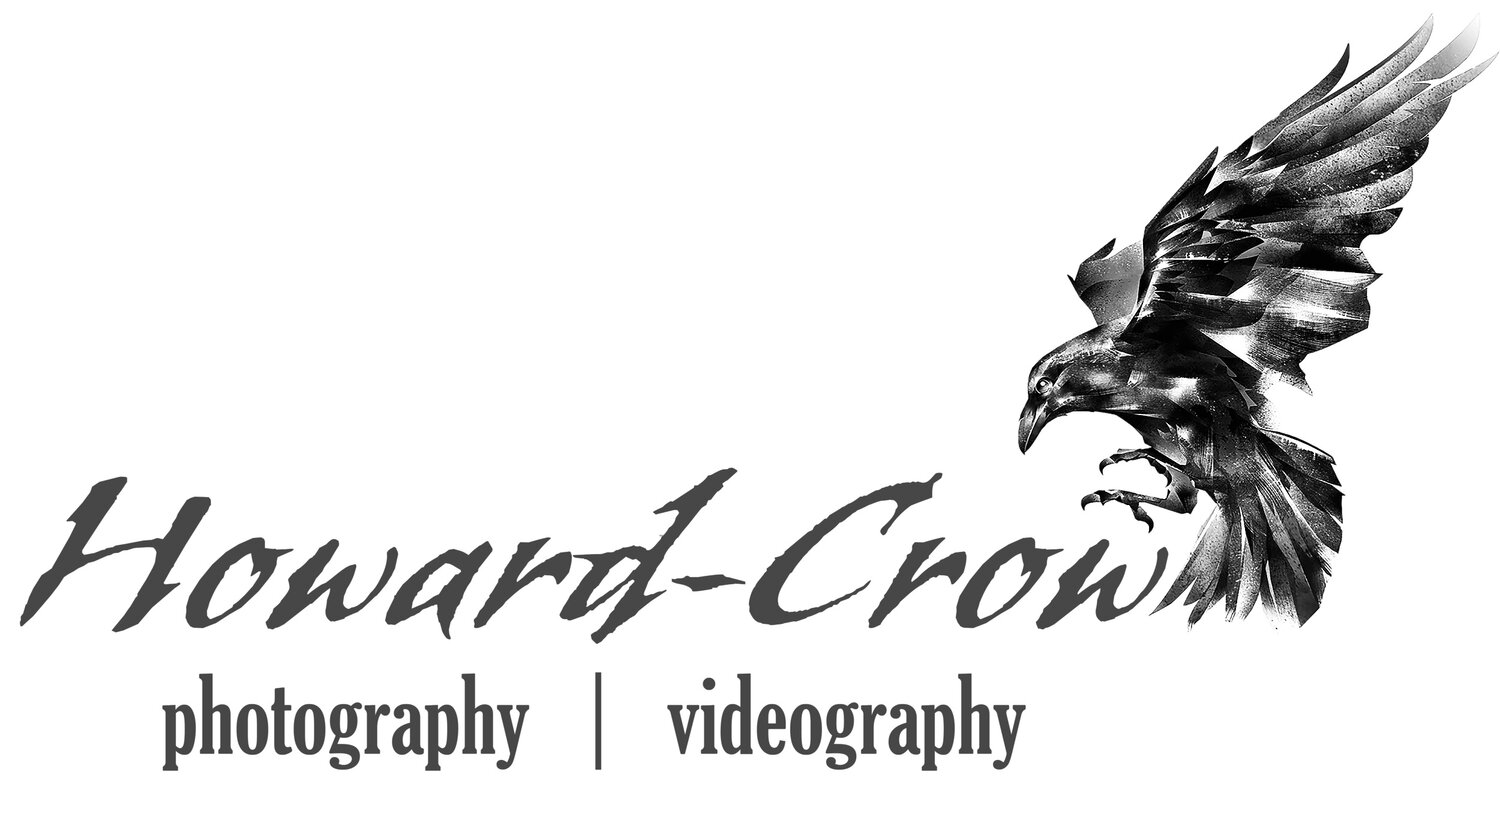 Howard-Crow Photography, LLC | Loveland CO | Photographer + Videographer